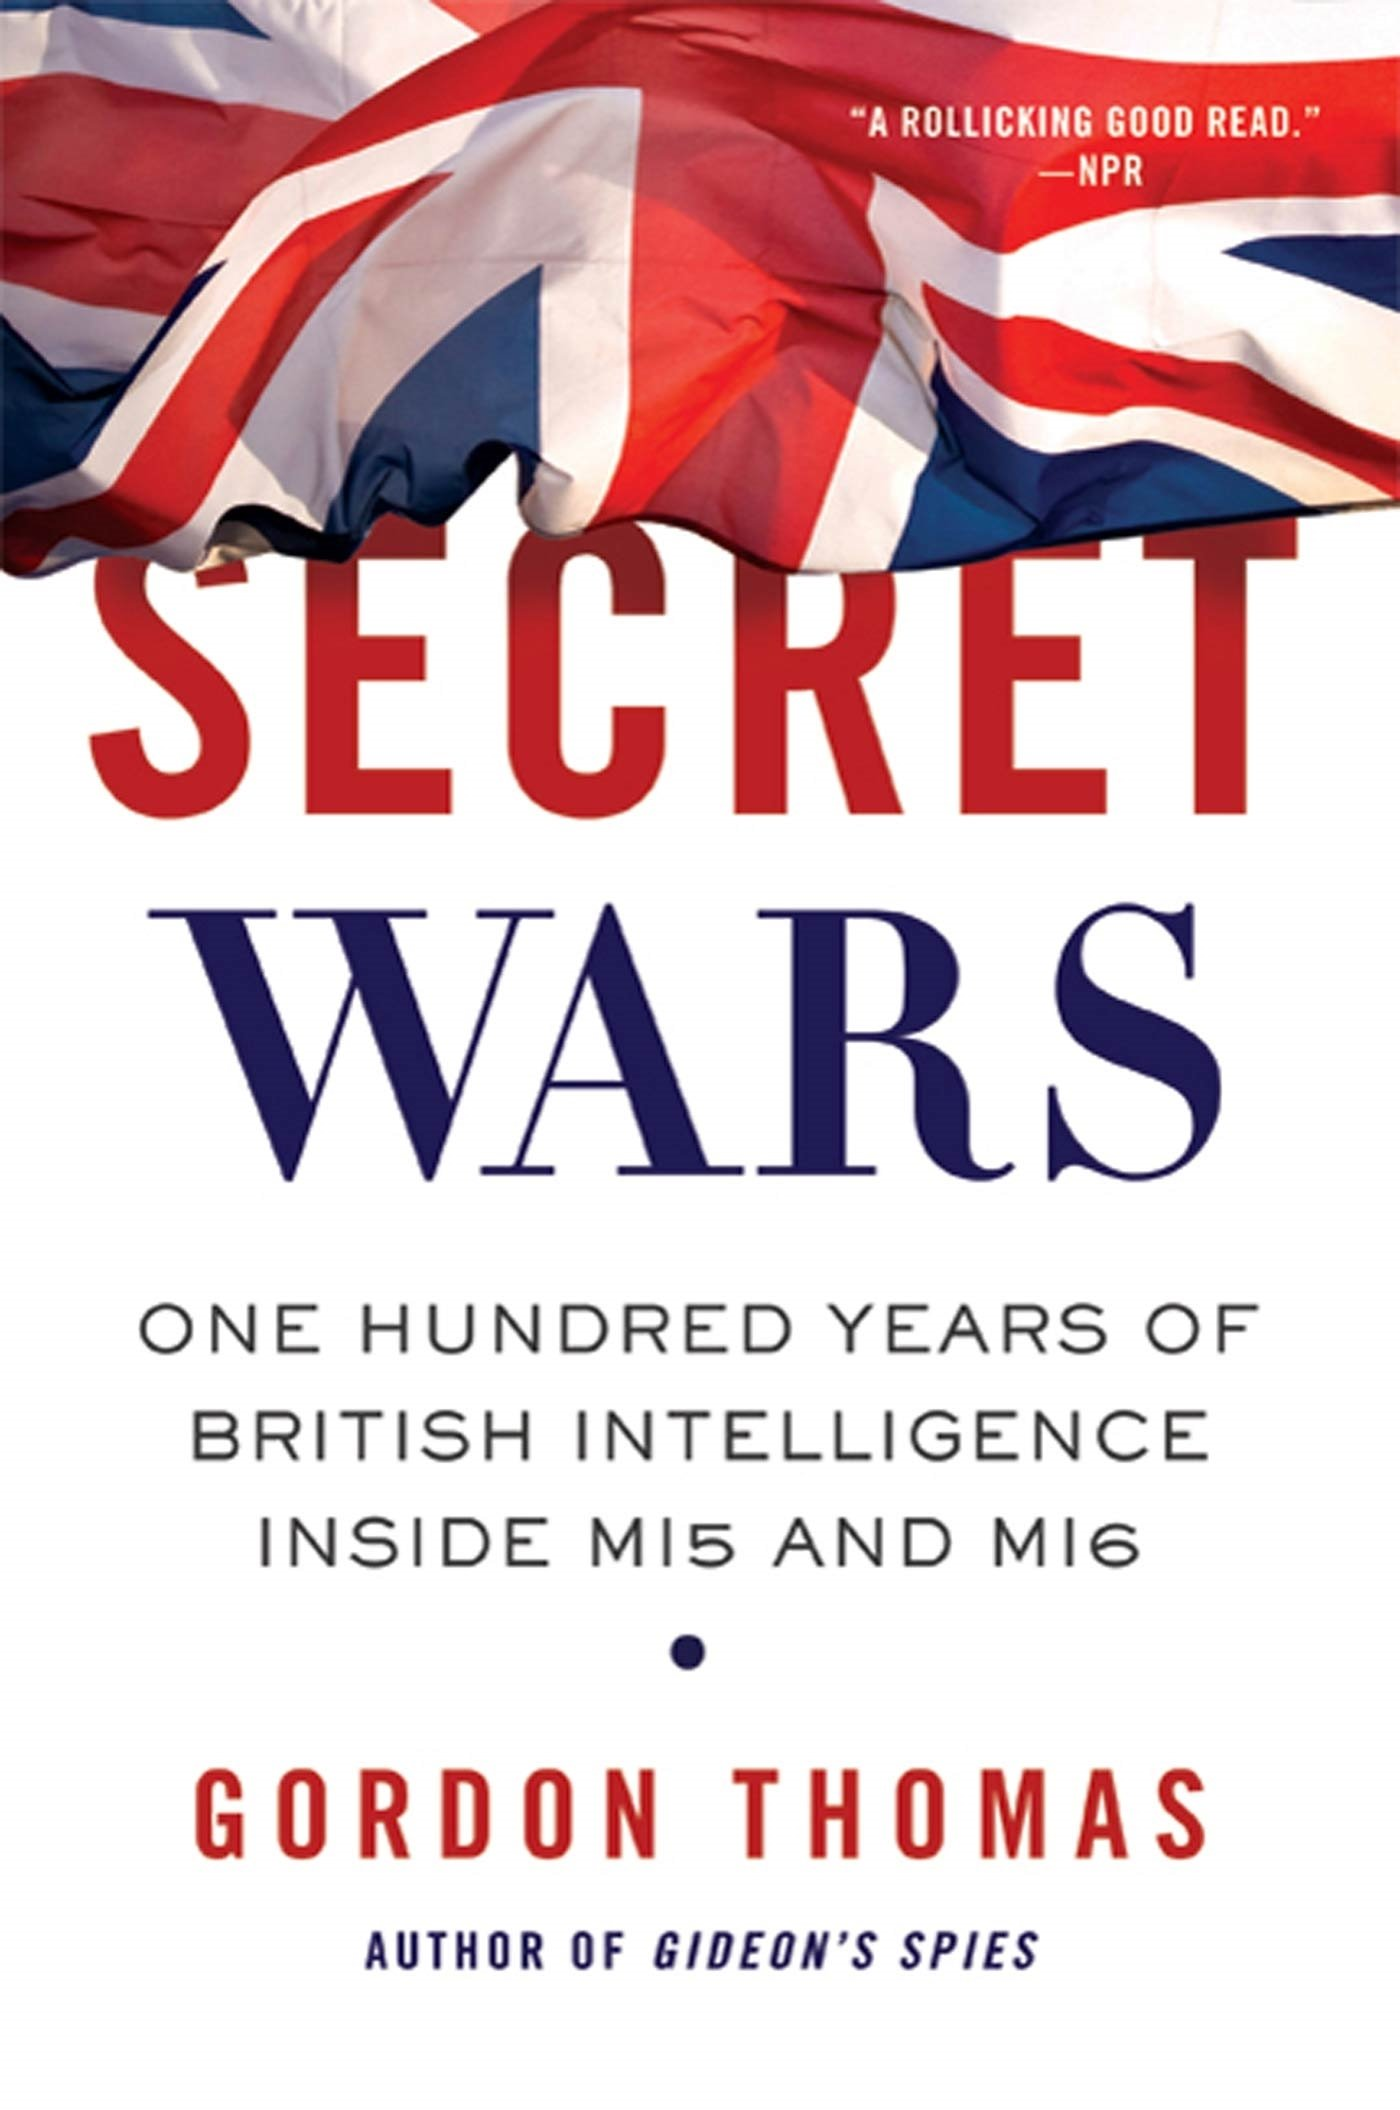 Secret Wars: One Hundred Years of British Intelligence Inside MI5 and MI6:  Gordon Thomas: 9780312603526: Amazon.com: Books